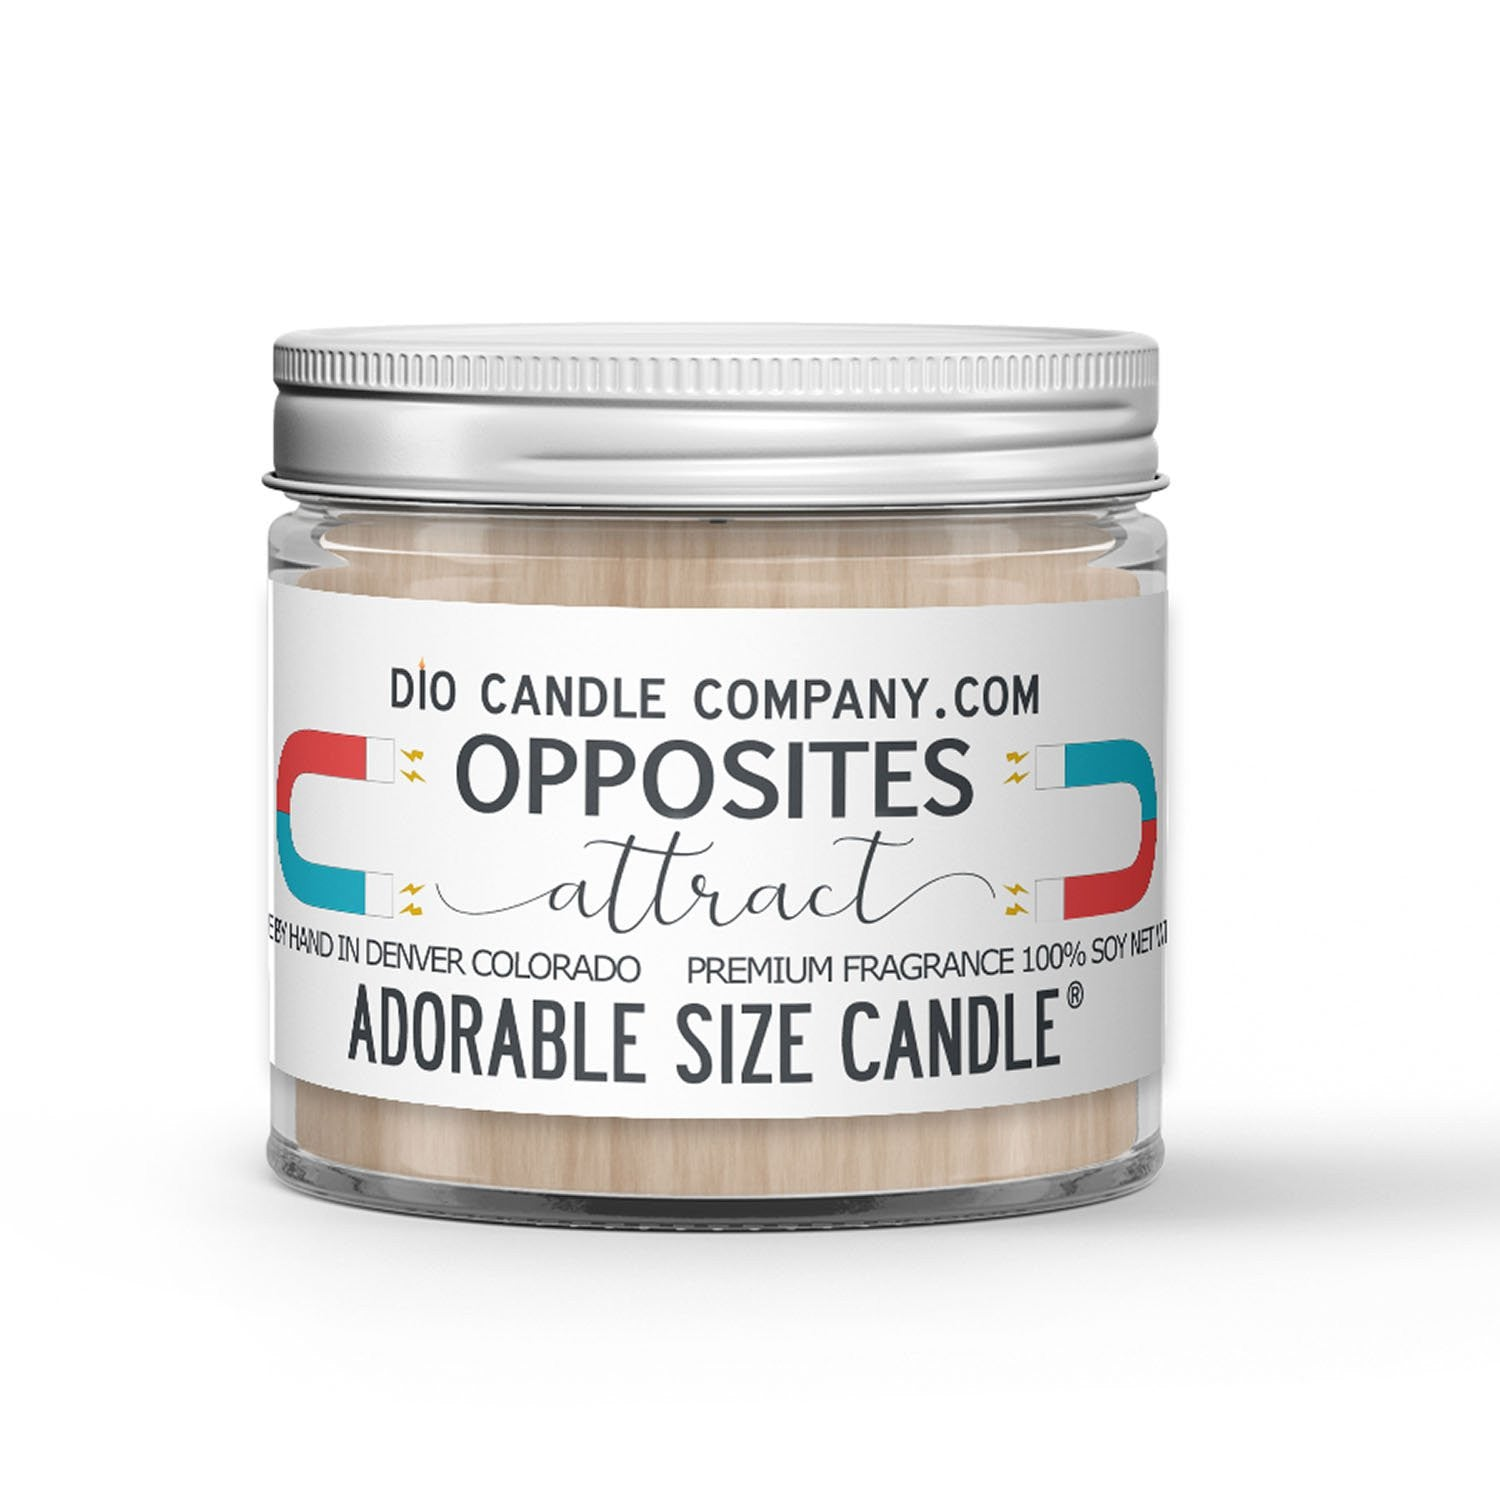 Opposites Attract Candle - Chocolate - Vanilla - 1oz Adorable Size Candle® - Dio Candle Company